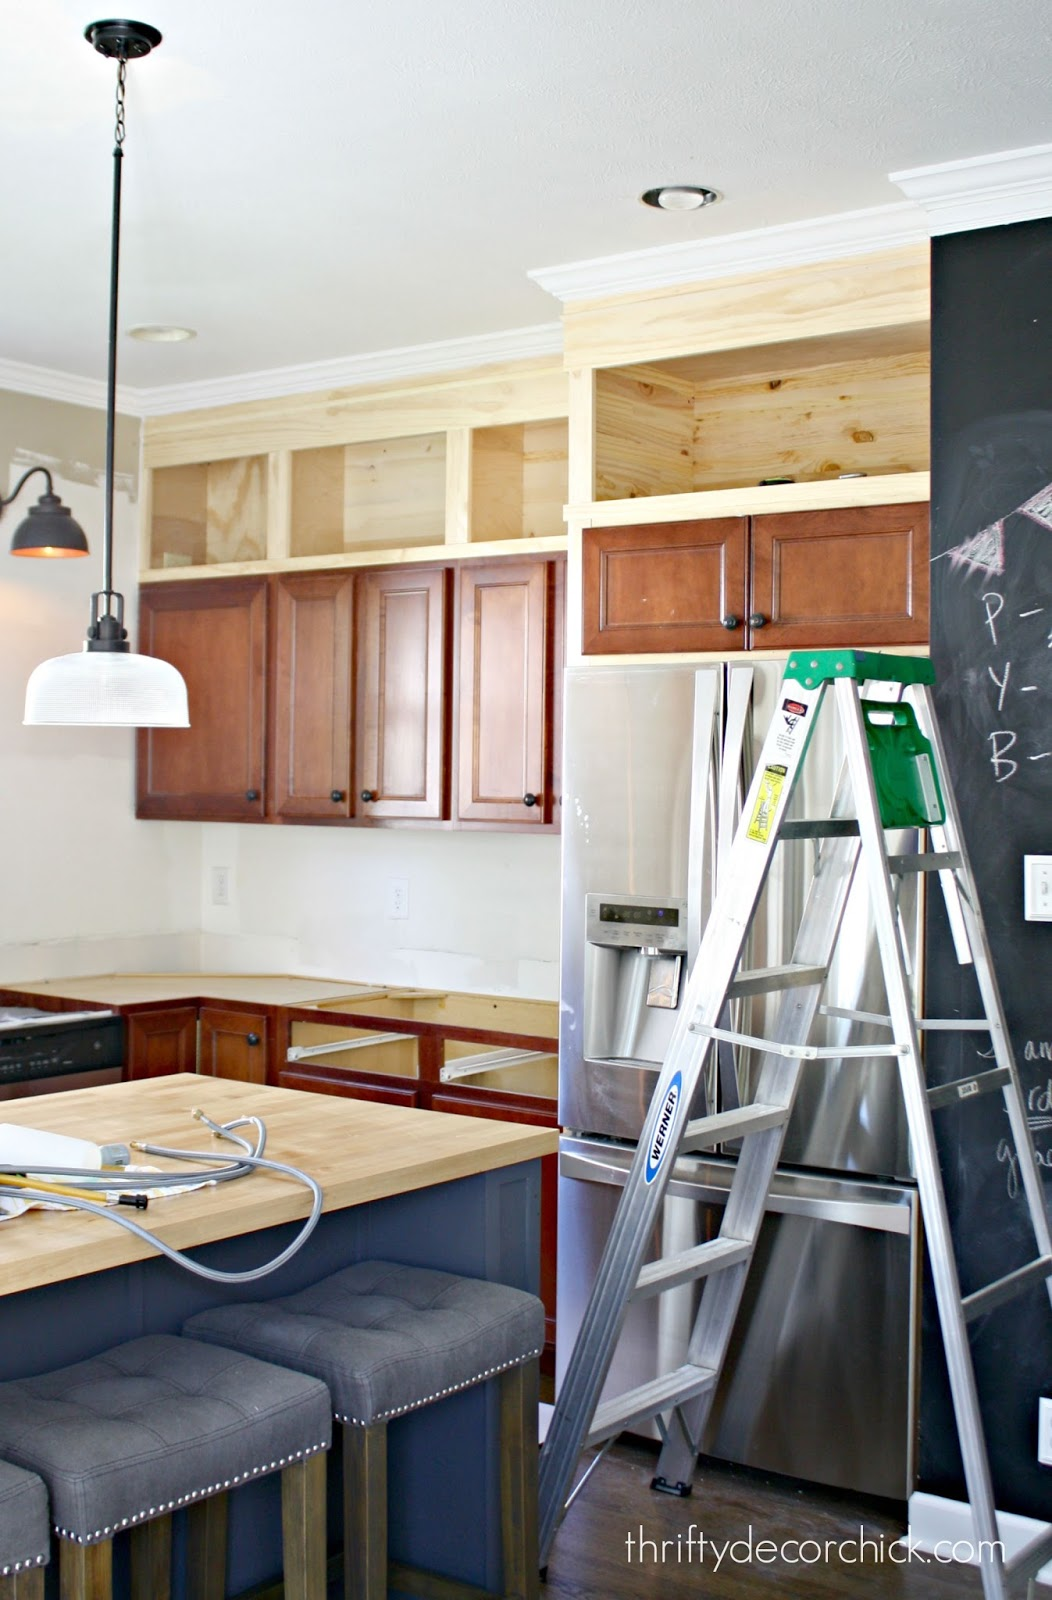 How to take kitchen cabinets to ceiling DIY